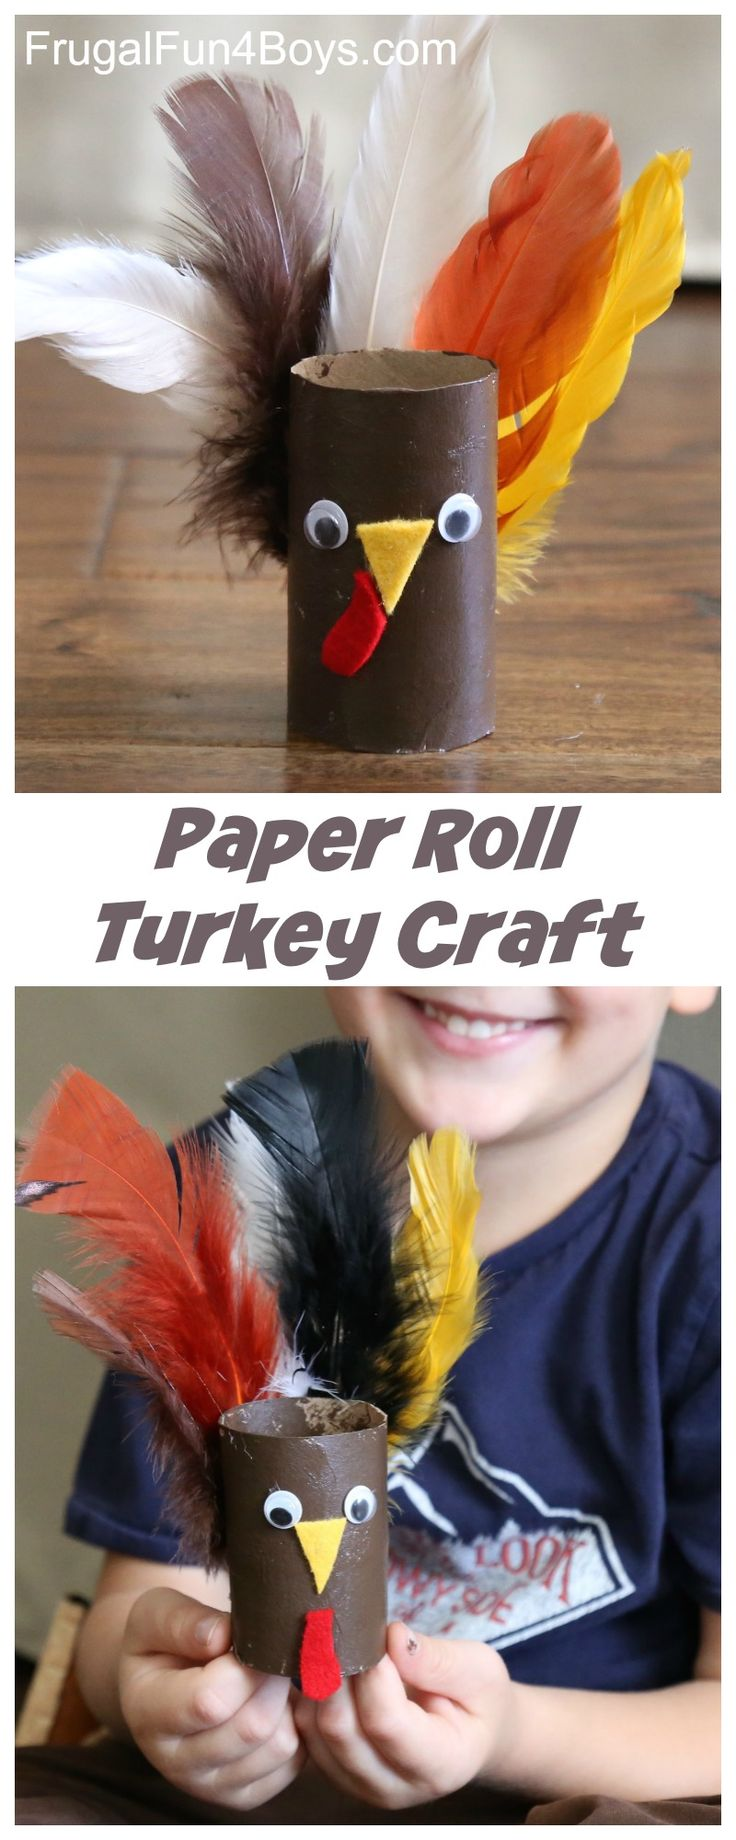 Adorable Paper Roll Turkey Craft - Perfect Thanksgiving project for preschoolers!